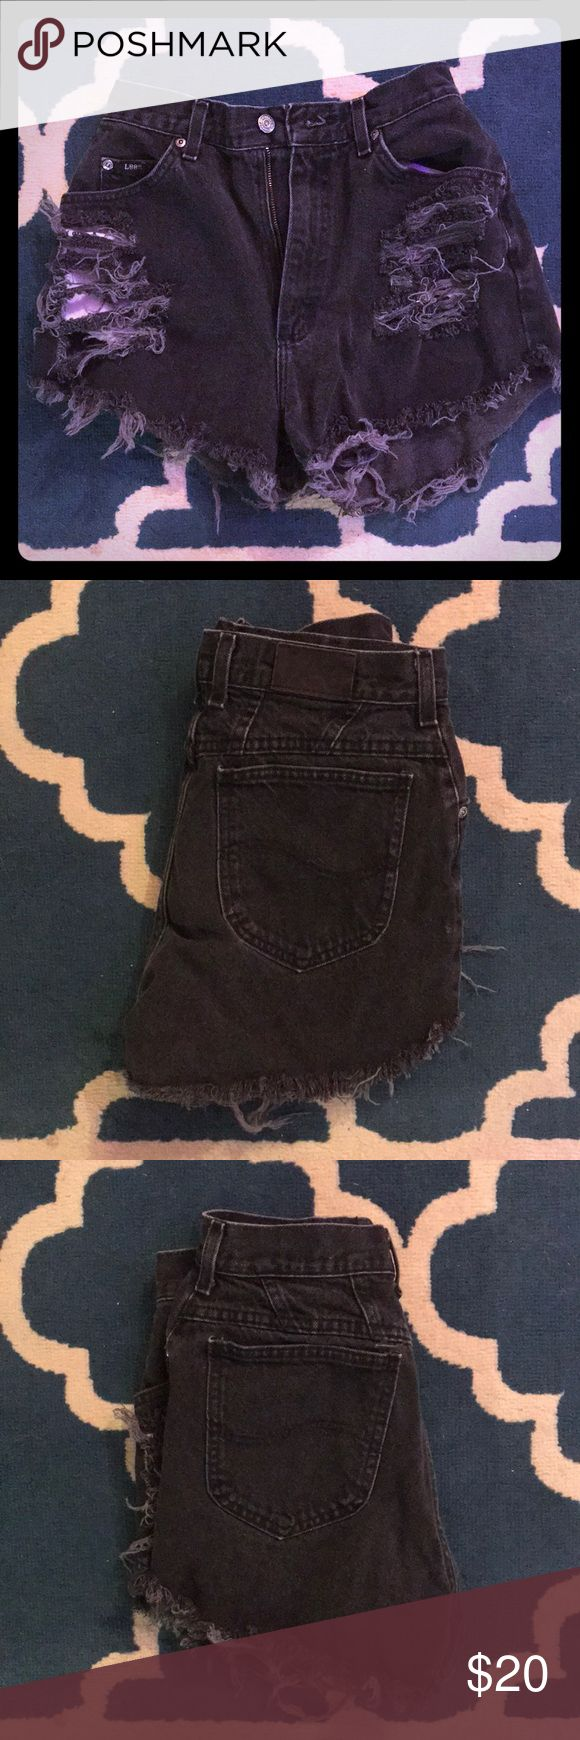 Vintage Lee high waisted distressed shorts Black distressed jean shorts with frayed ends. Super high waisted and cheeky. Tags too faded to read but they fit like a size 4. Too big for me now. Worn only a couple times Lee Shorts Jean Shorts